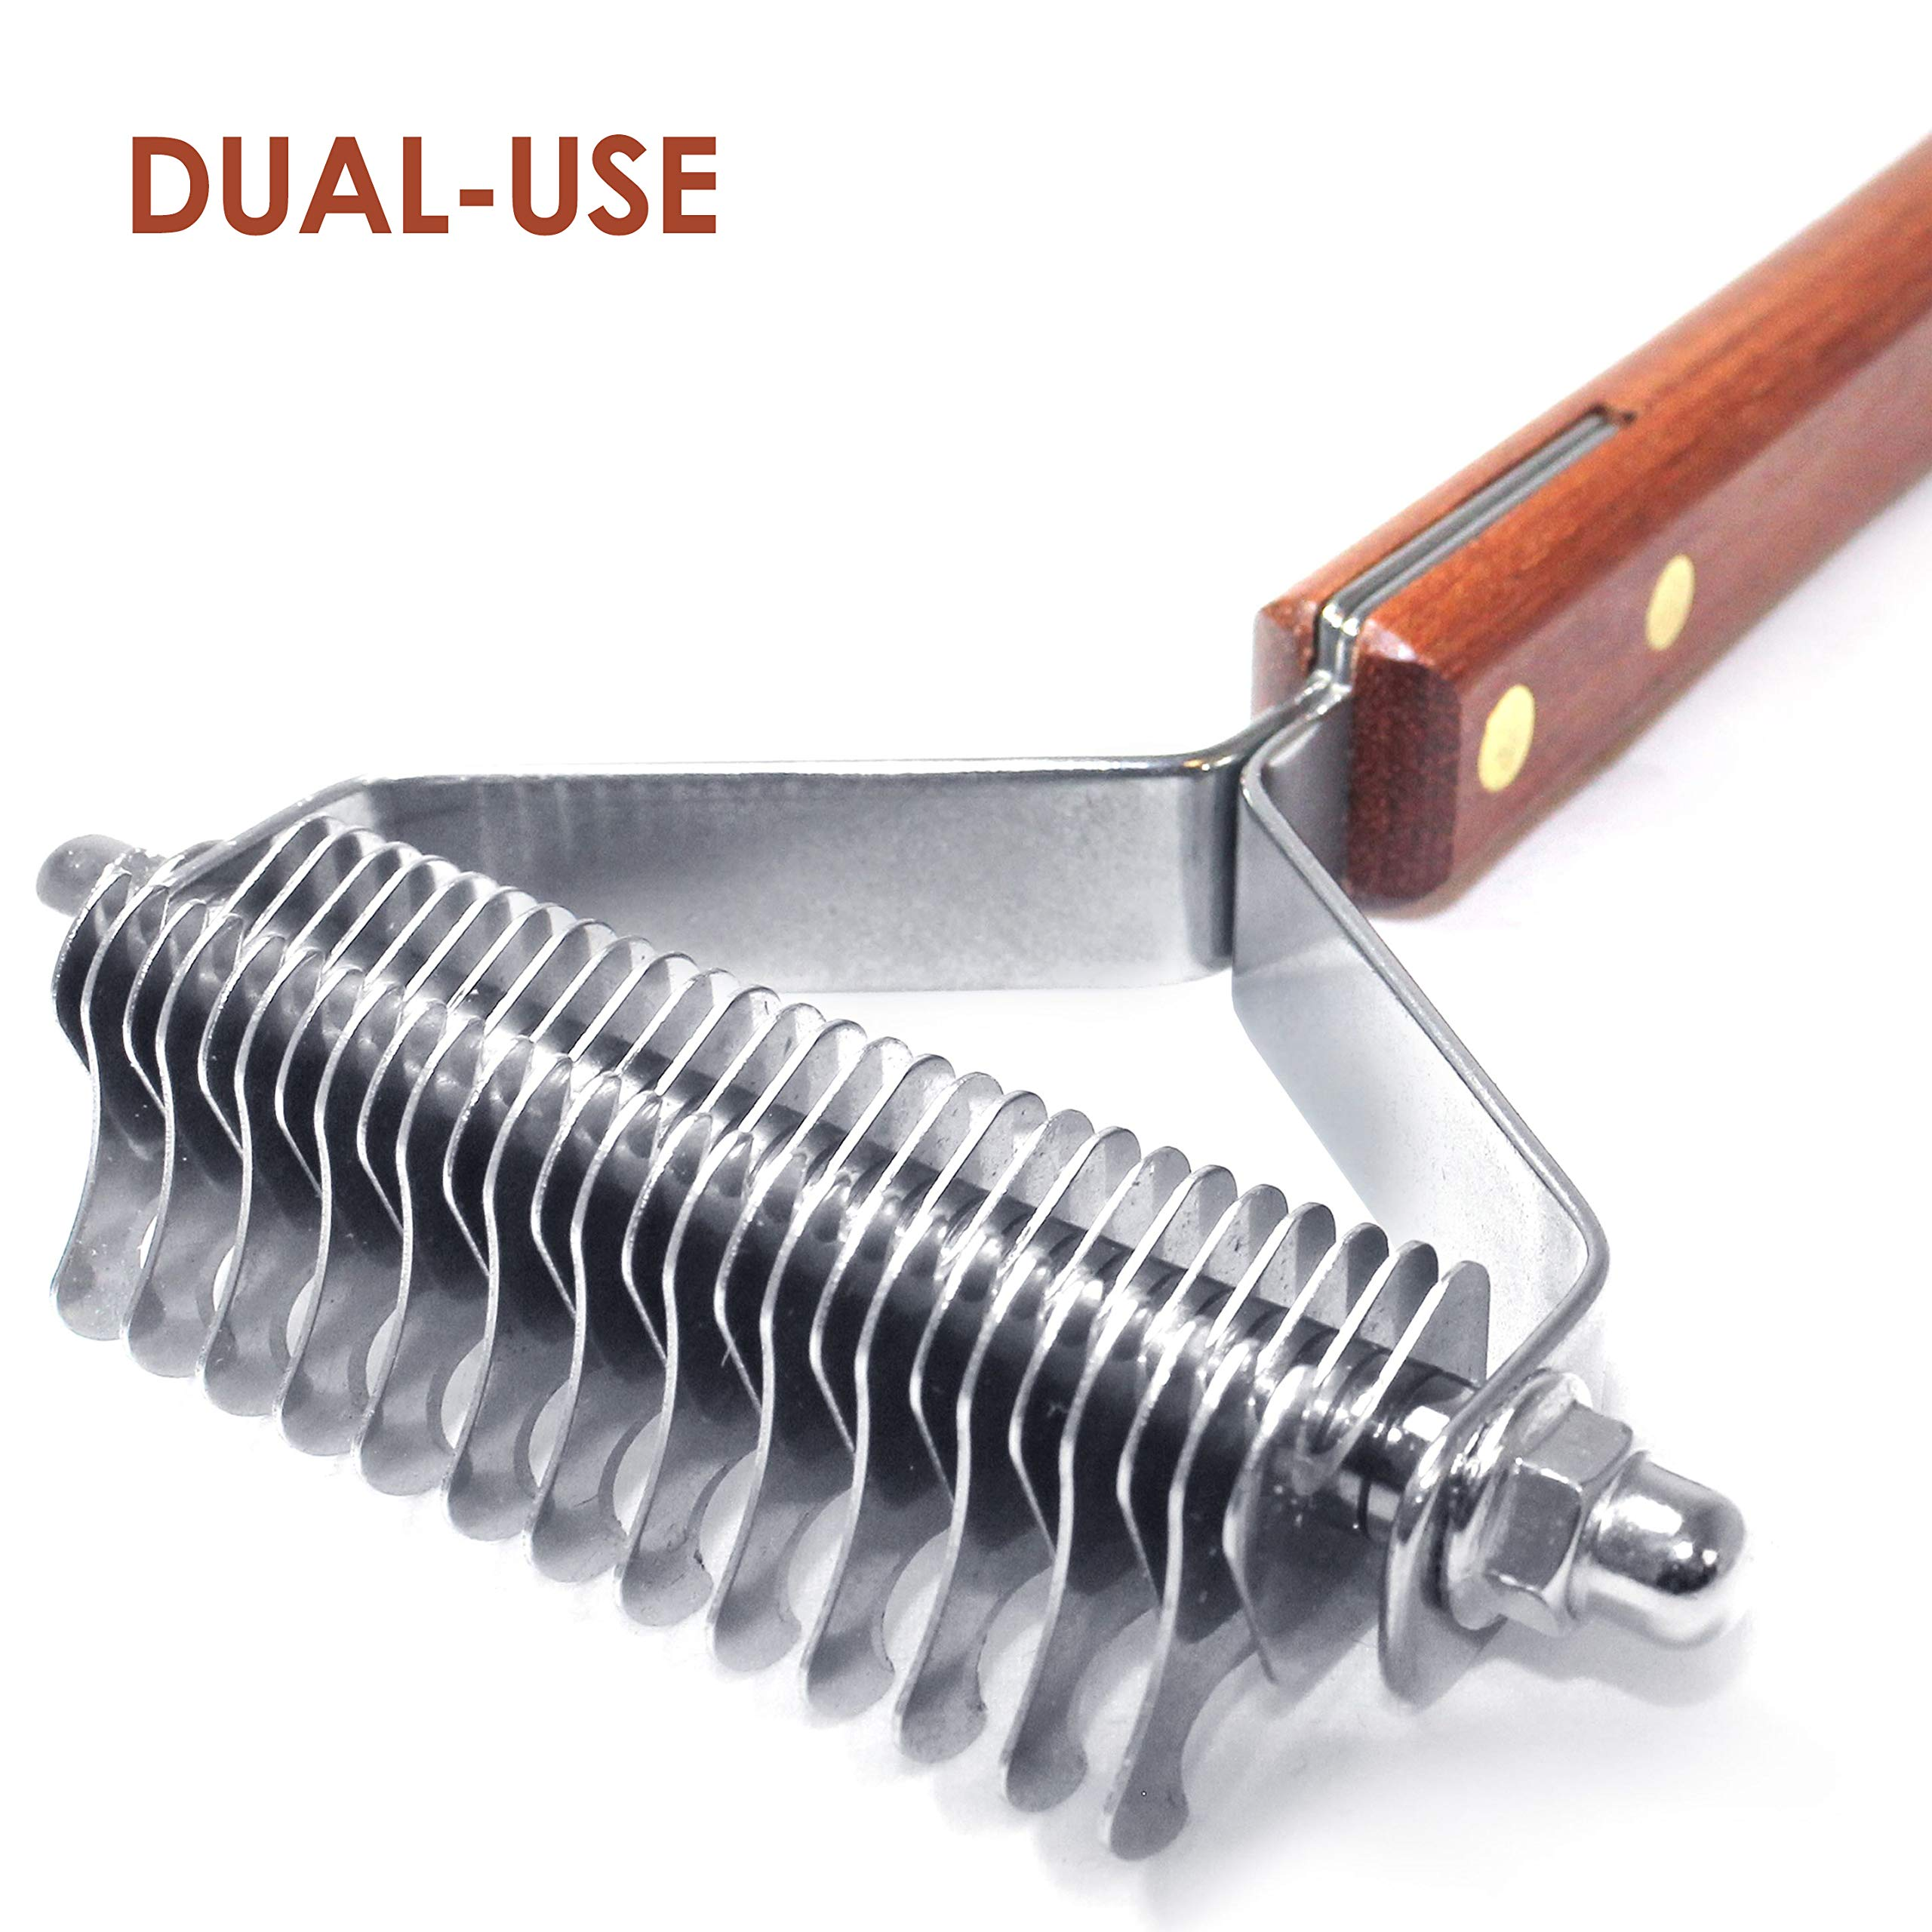 PawsPamper Dual-Use Undercoat Rake - Dematting & Finishing Grooming Tool for Dogs and Cats (13+27 Blades) by PawsPamper